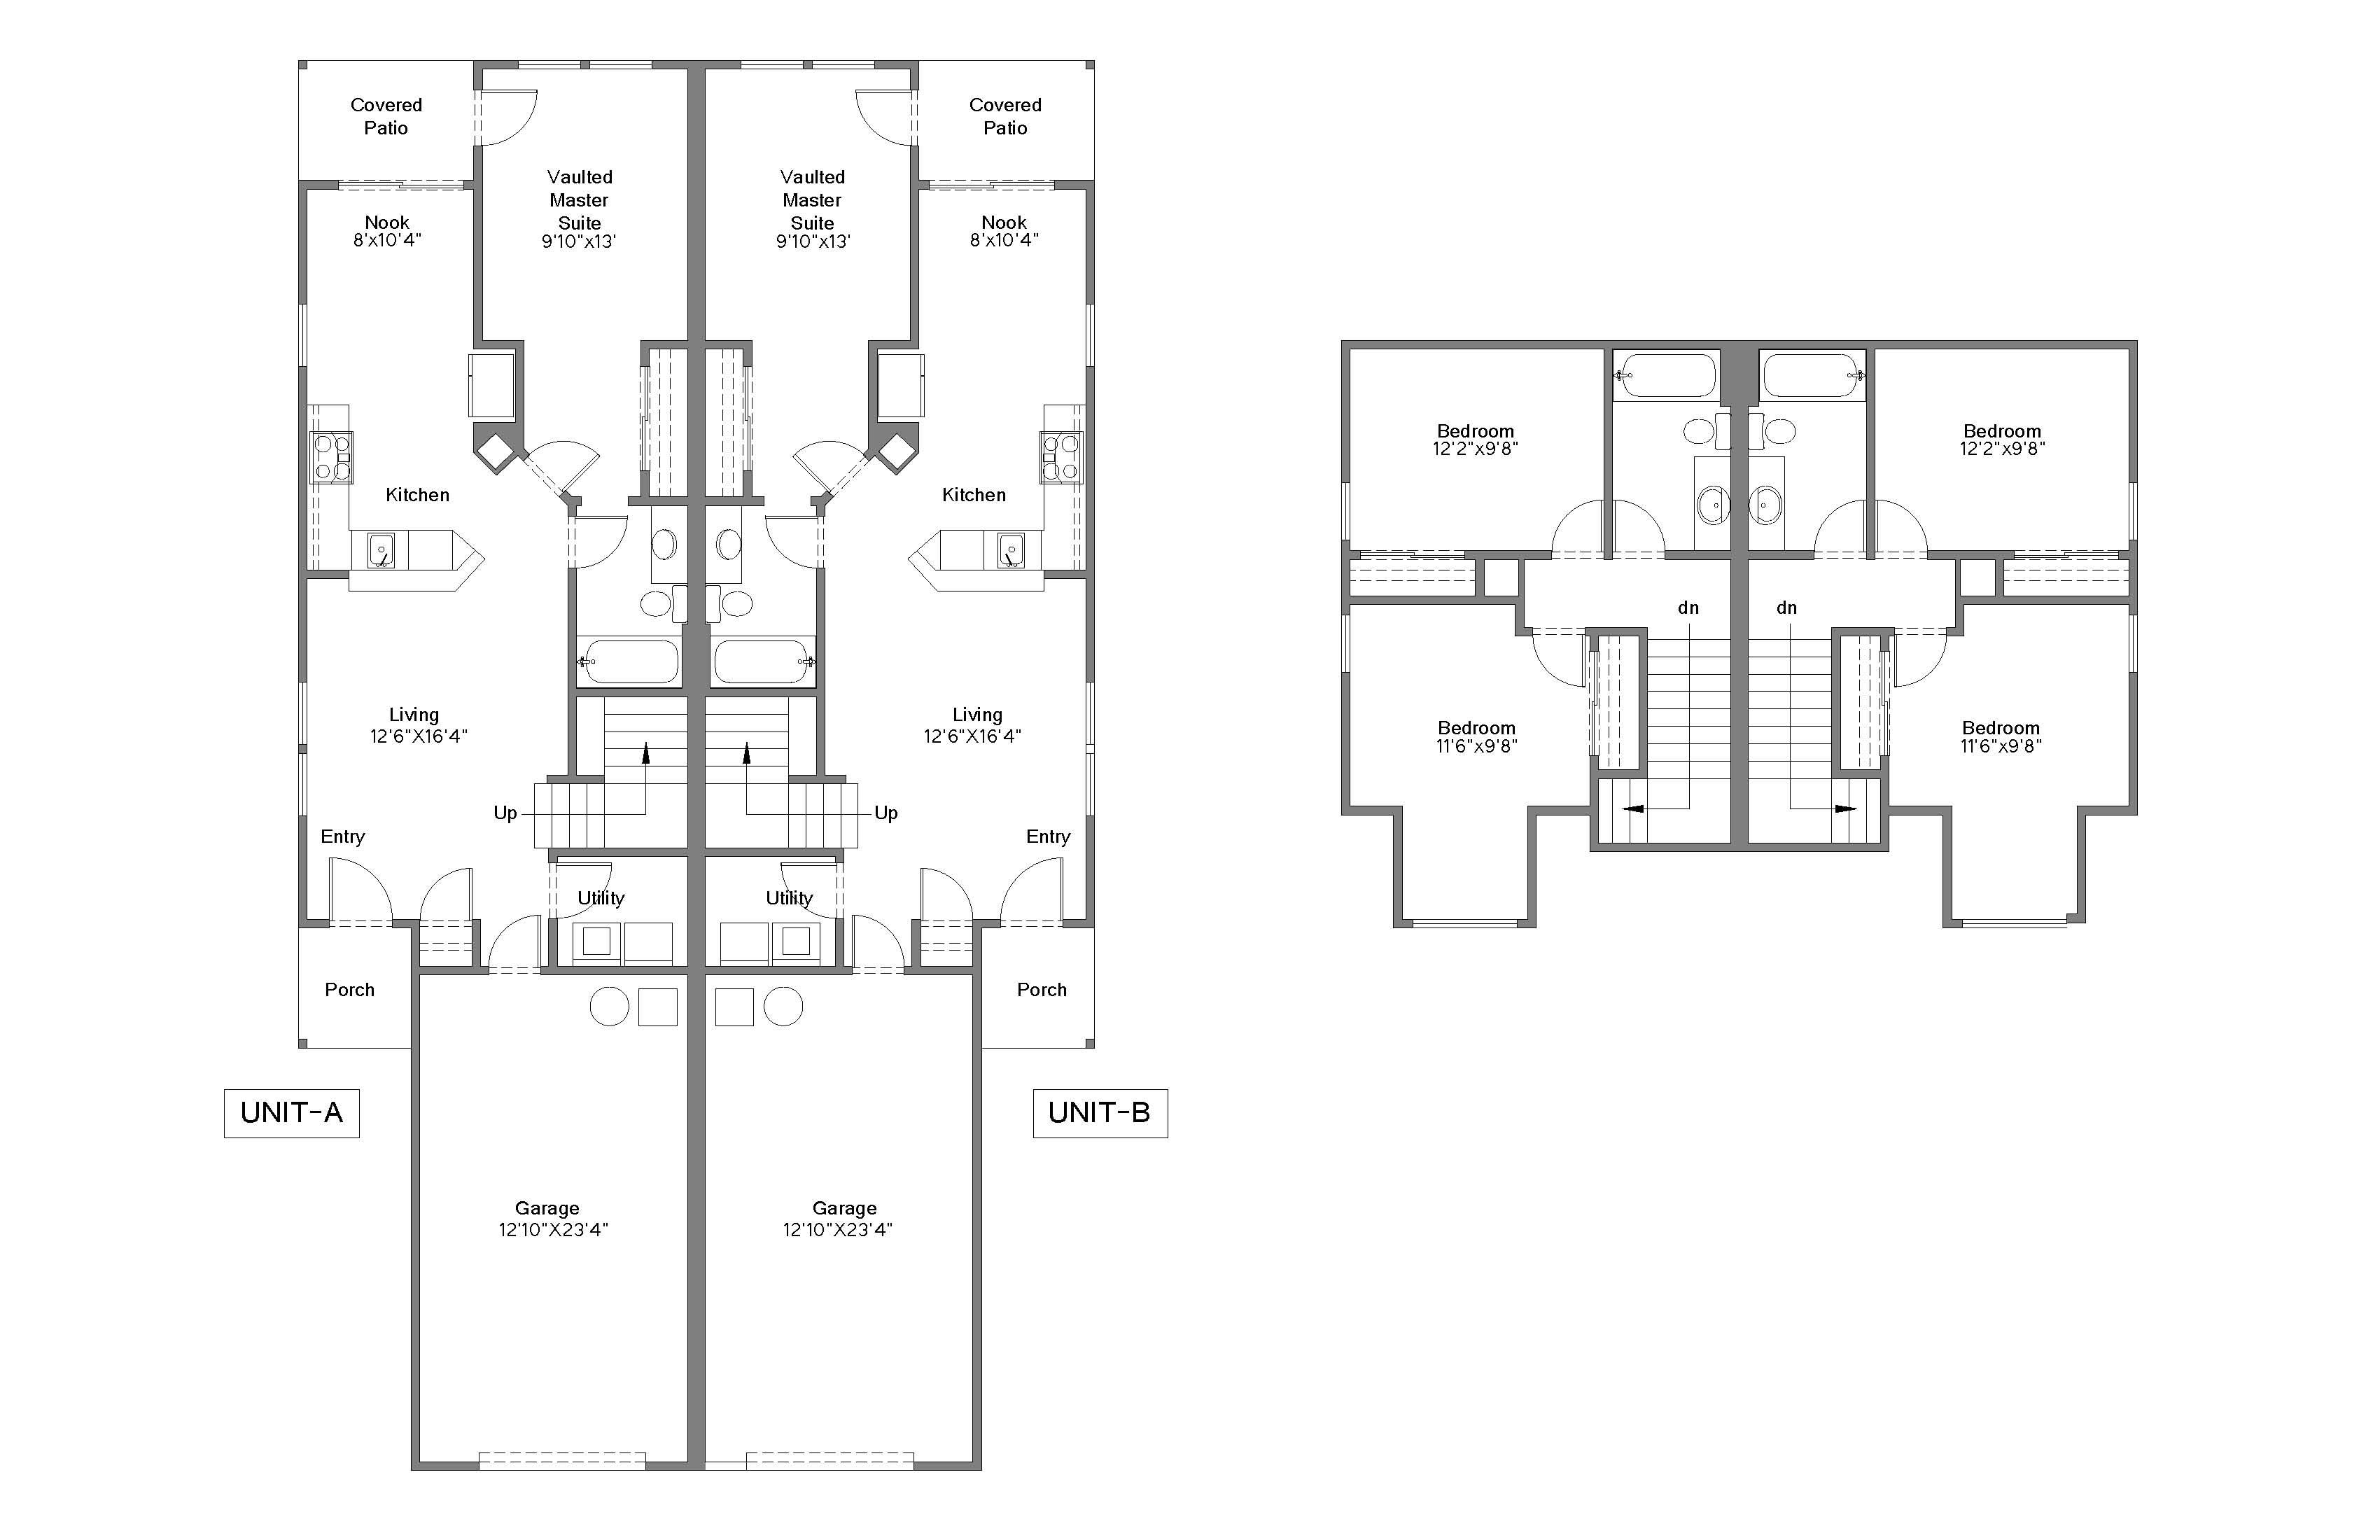 How to draw architectural floor plans architect services Online plan drawing